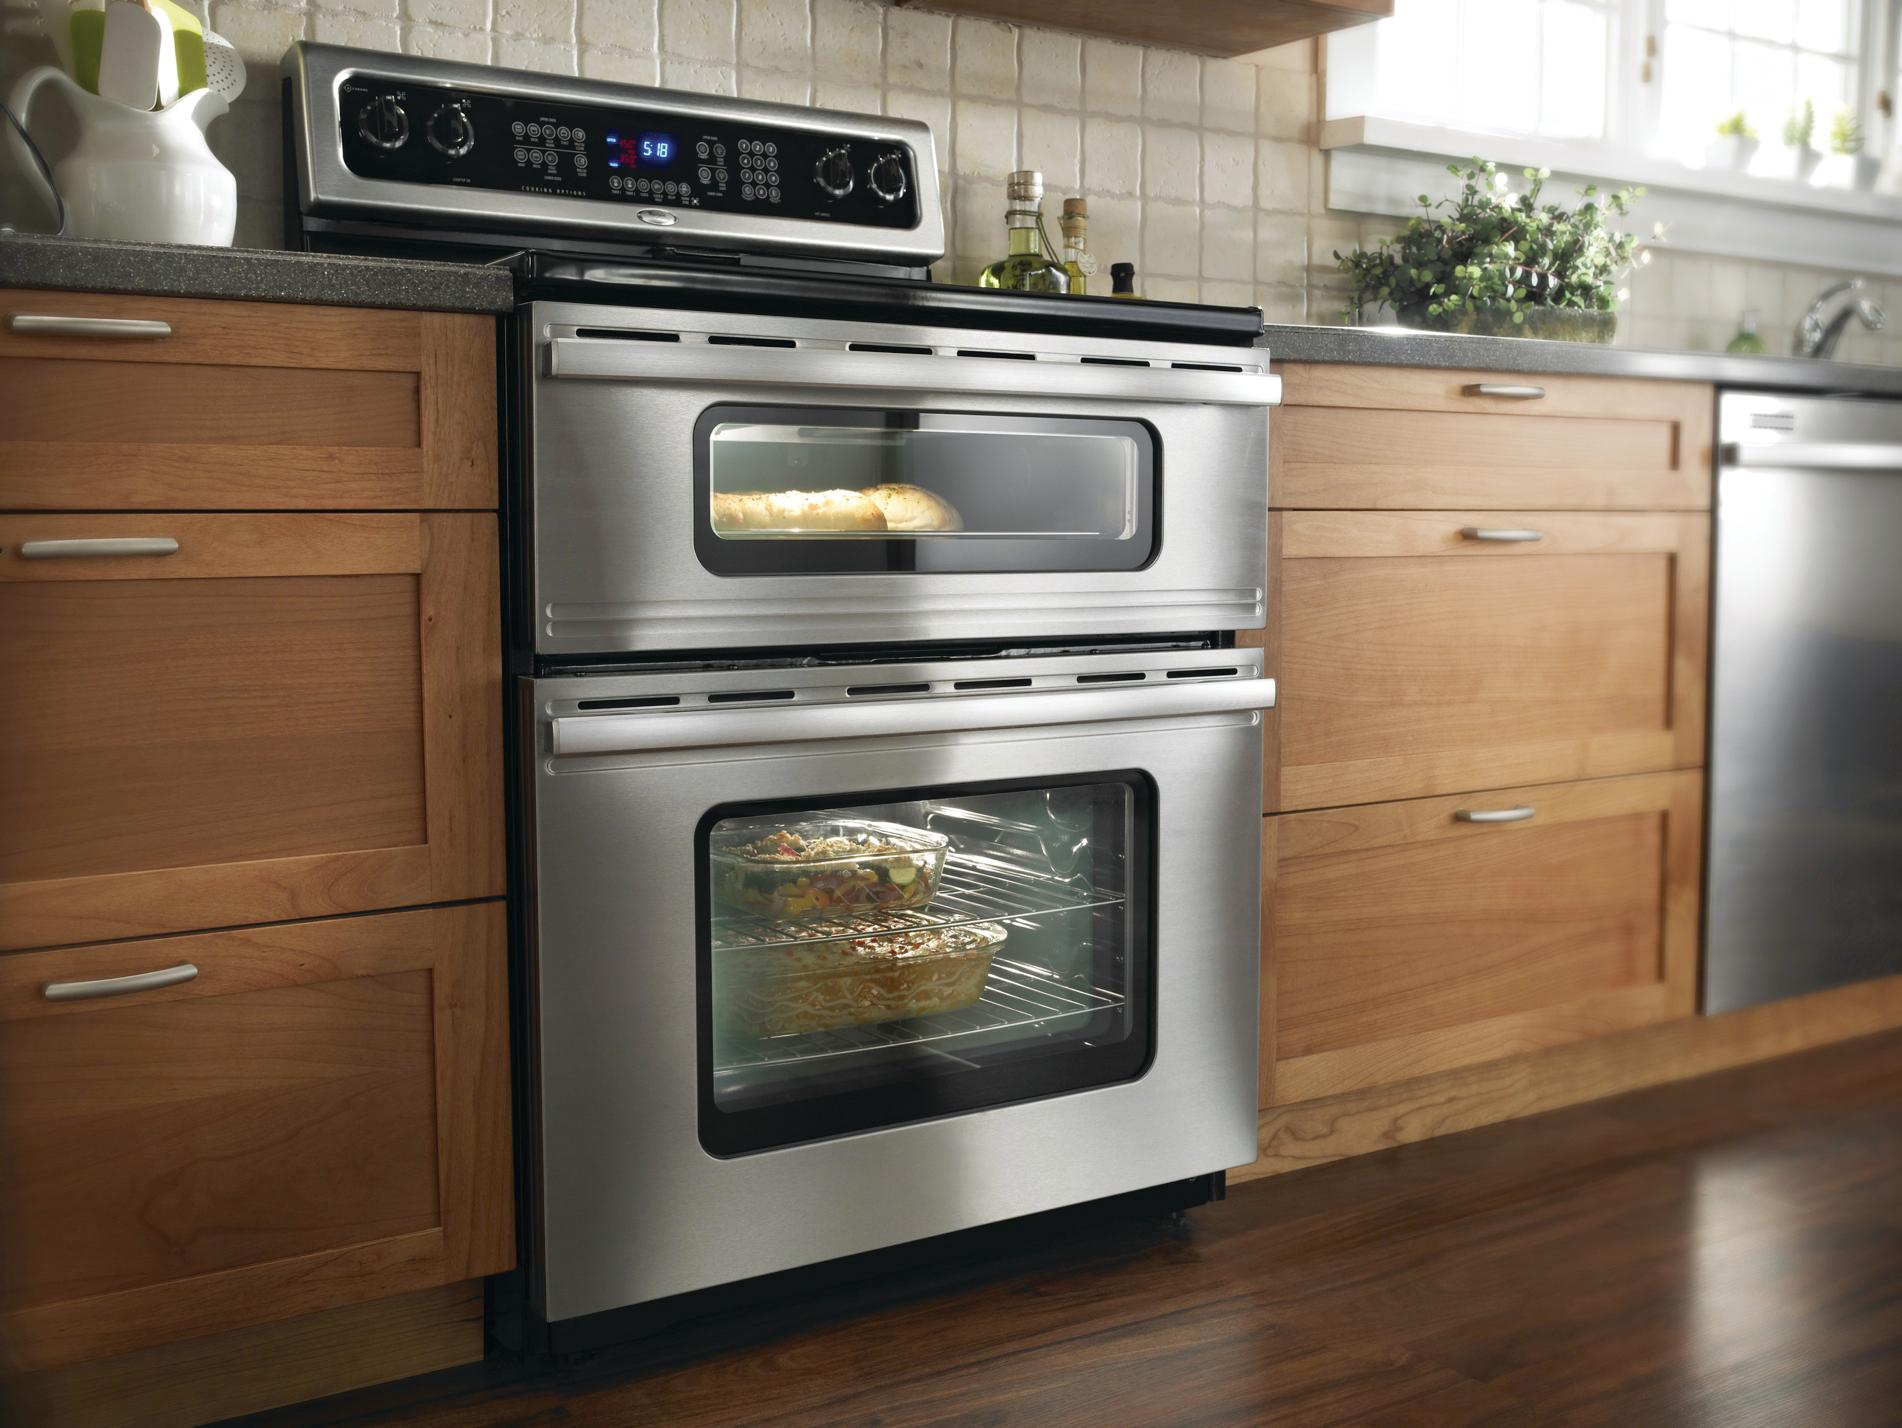 Whirlpool Gold Freestanding Double Range | Remodeling | Appliances, Kitchen,  Natural Metals, Metal, Whirlpool